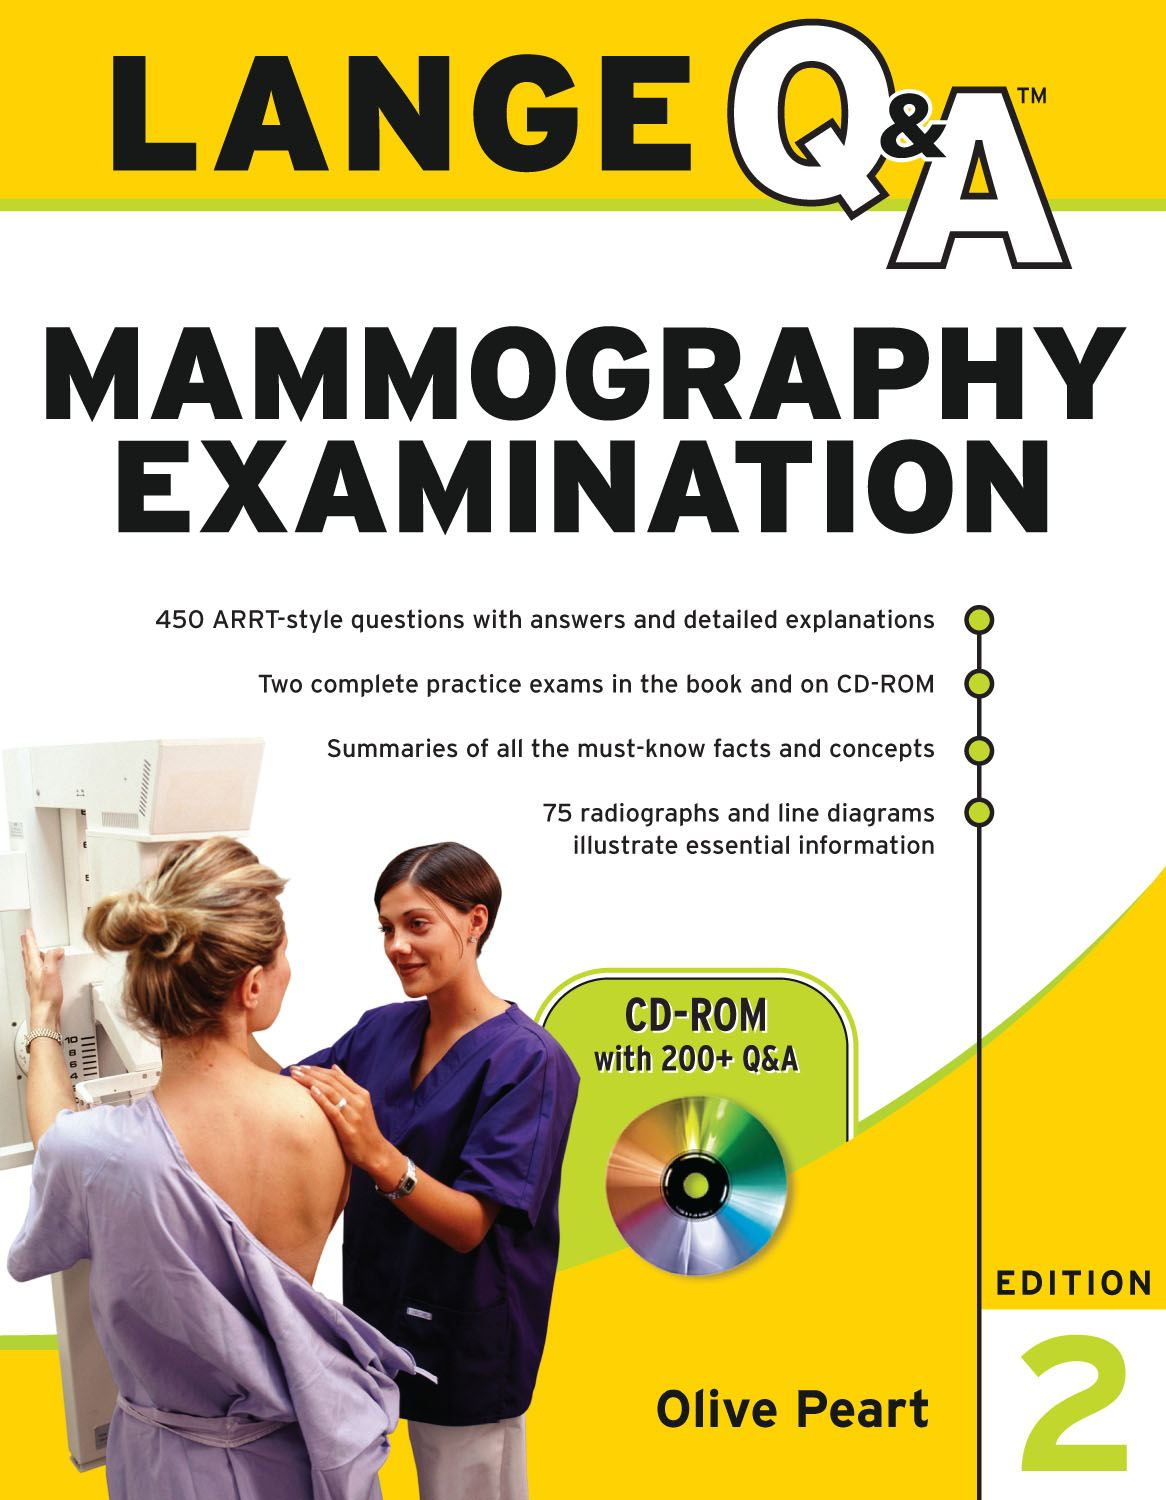 Lange Q&Amp;A: Mammography Examination, Second Edition